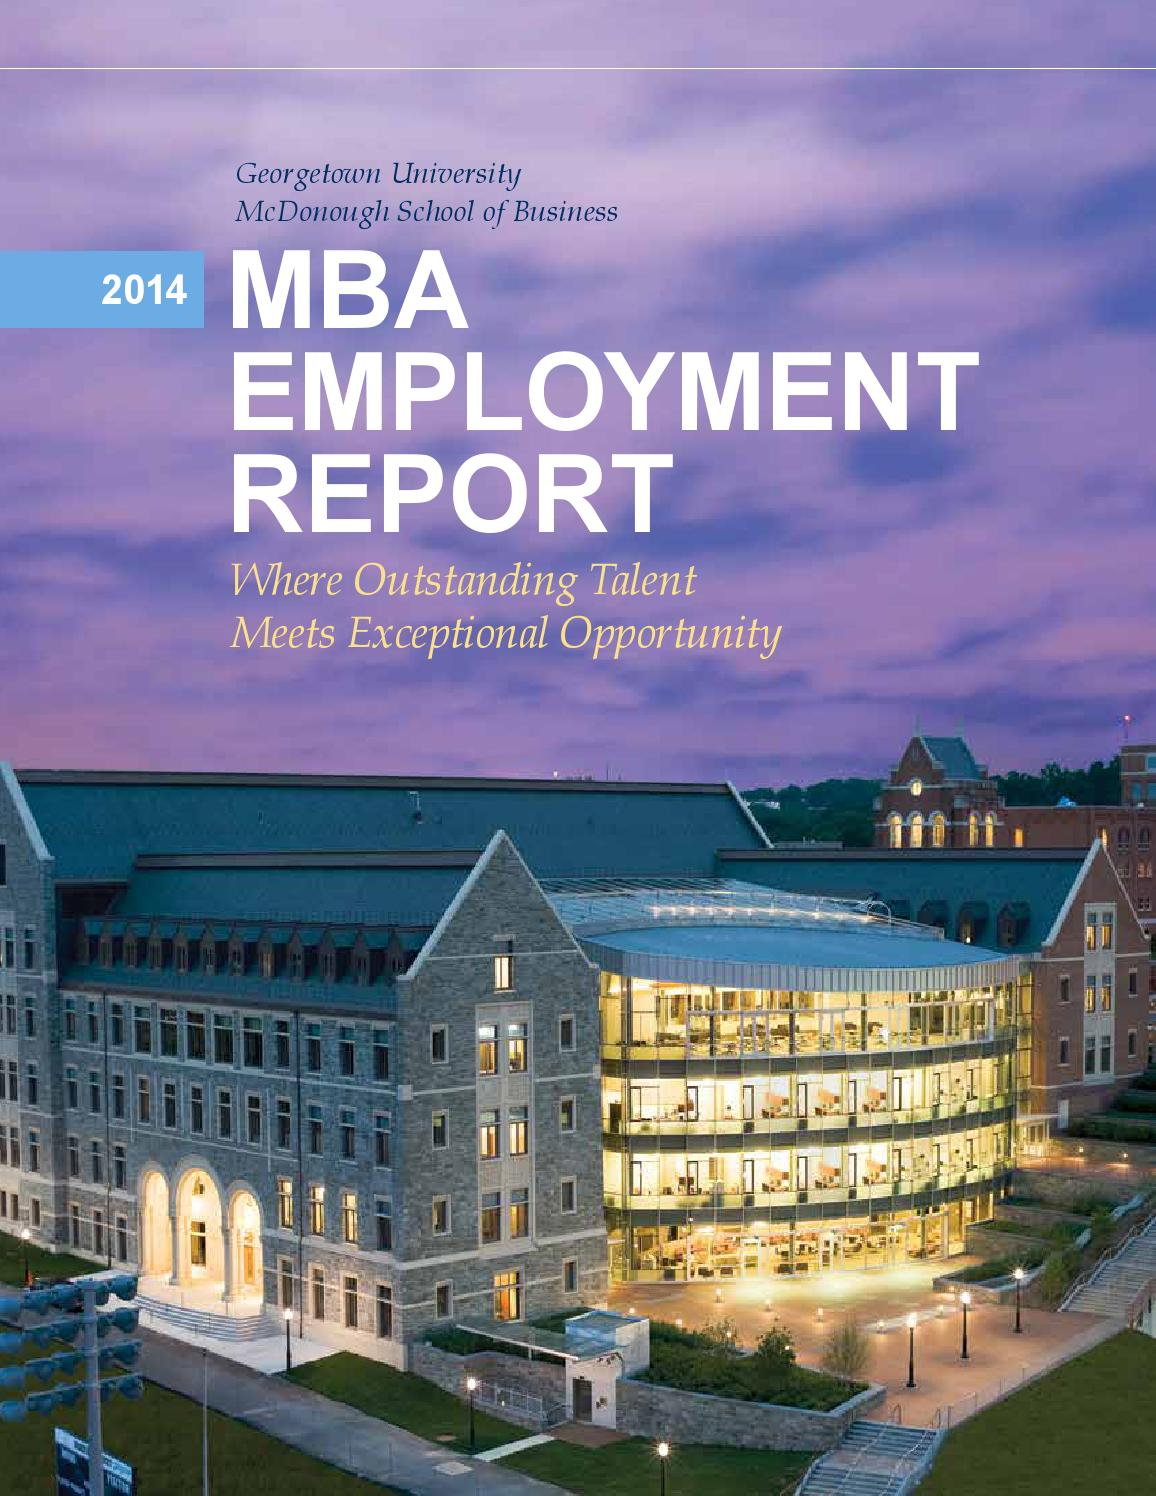 northwestern university mba essays Northwestern university's kellogg essay topics are now available for business school applicants targeting the kellogg mba class of 2019.